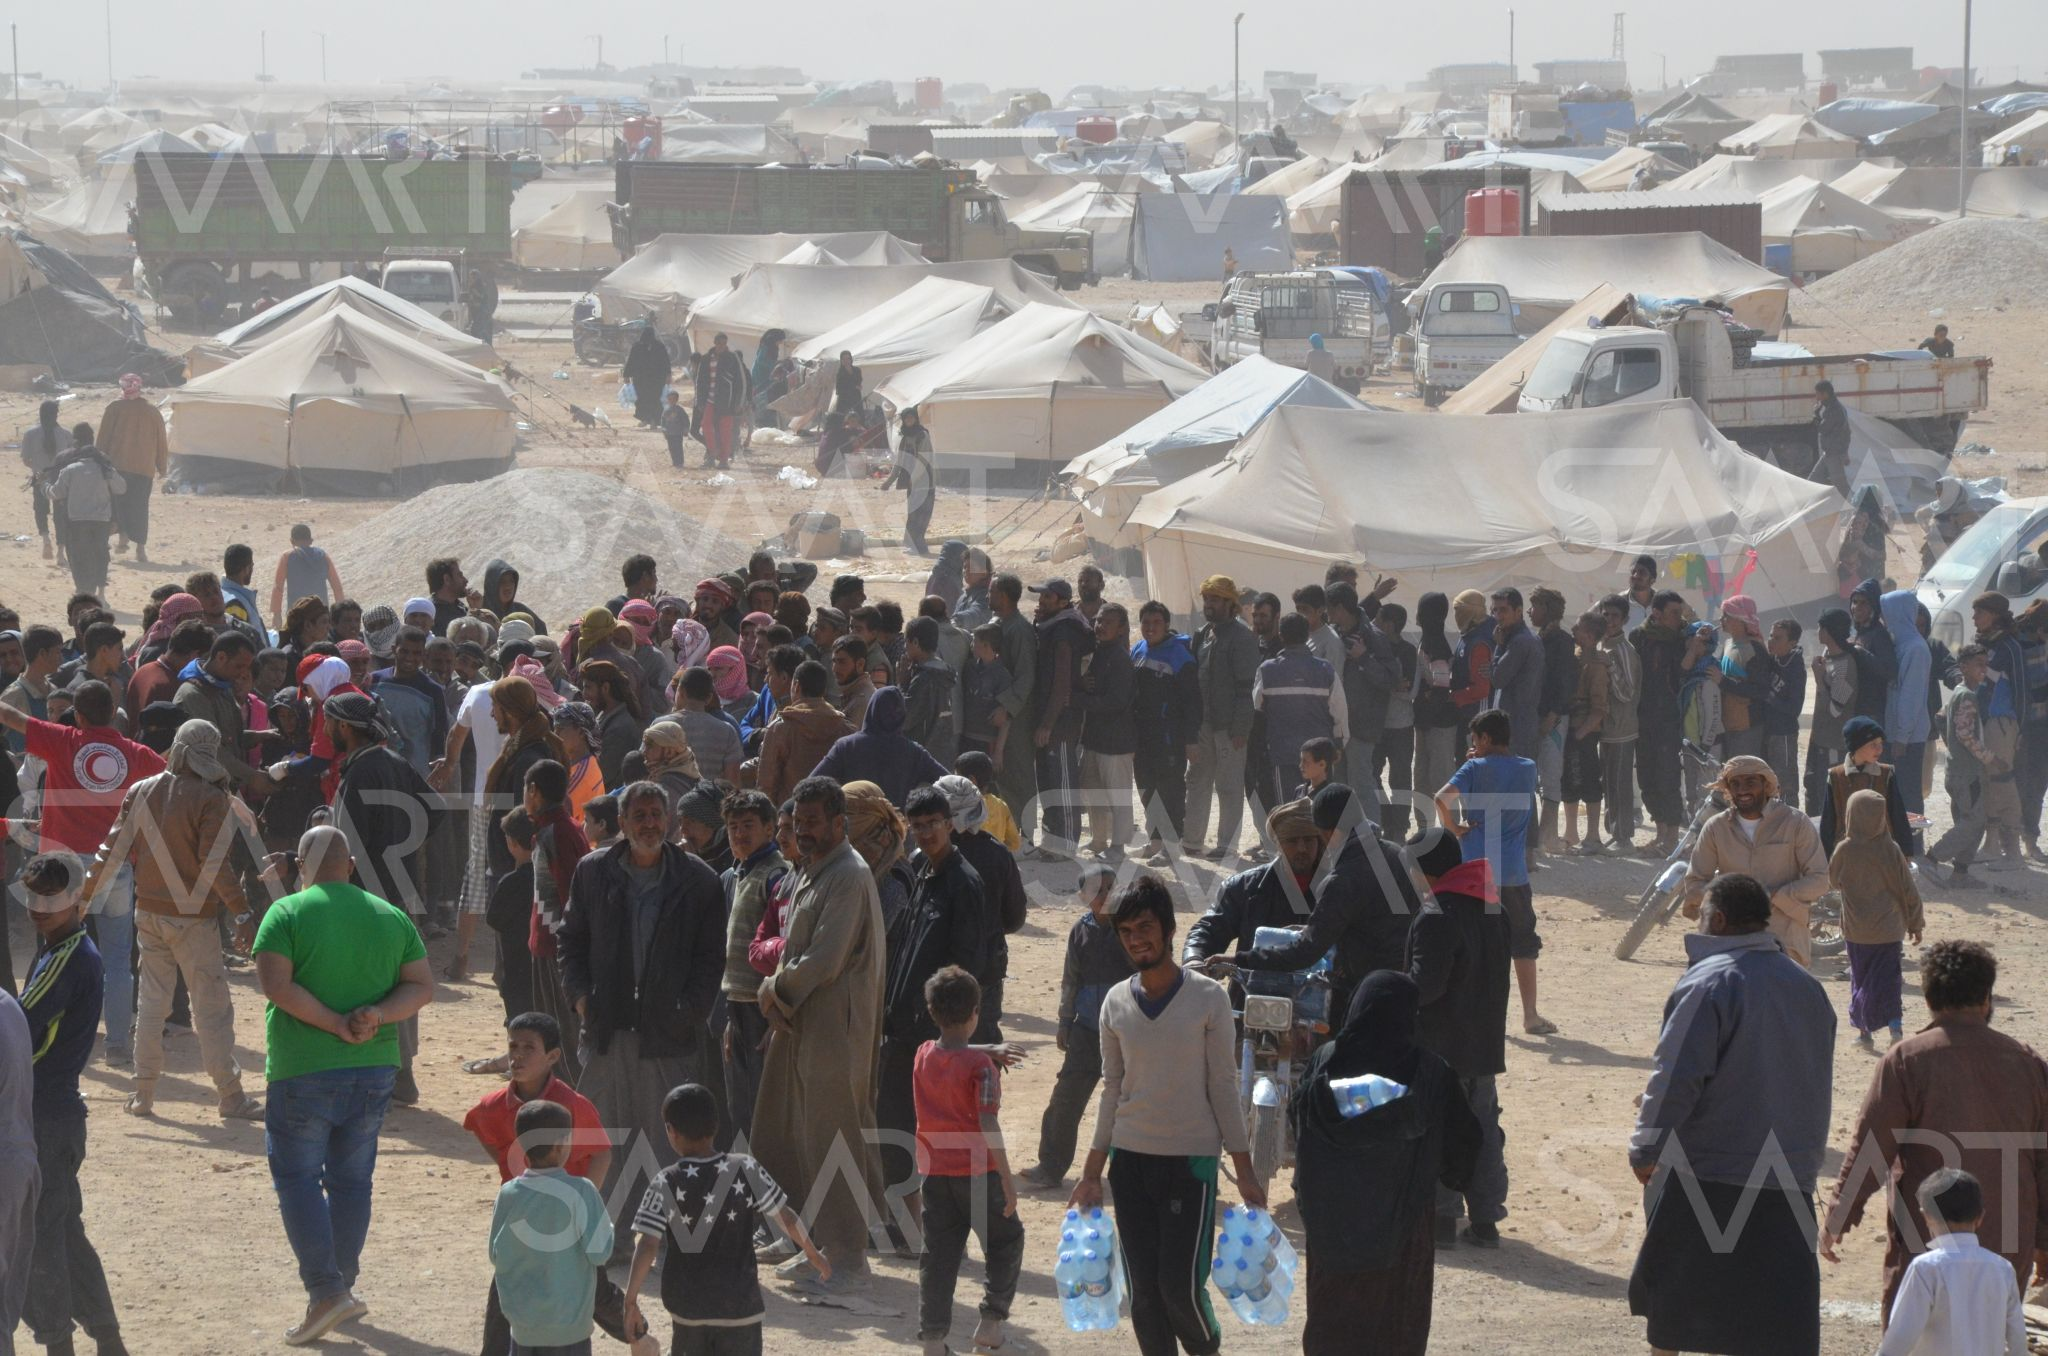 UN: Hundreds of displaced children died at Syria's al-Hol camp